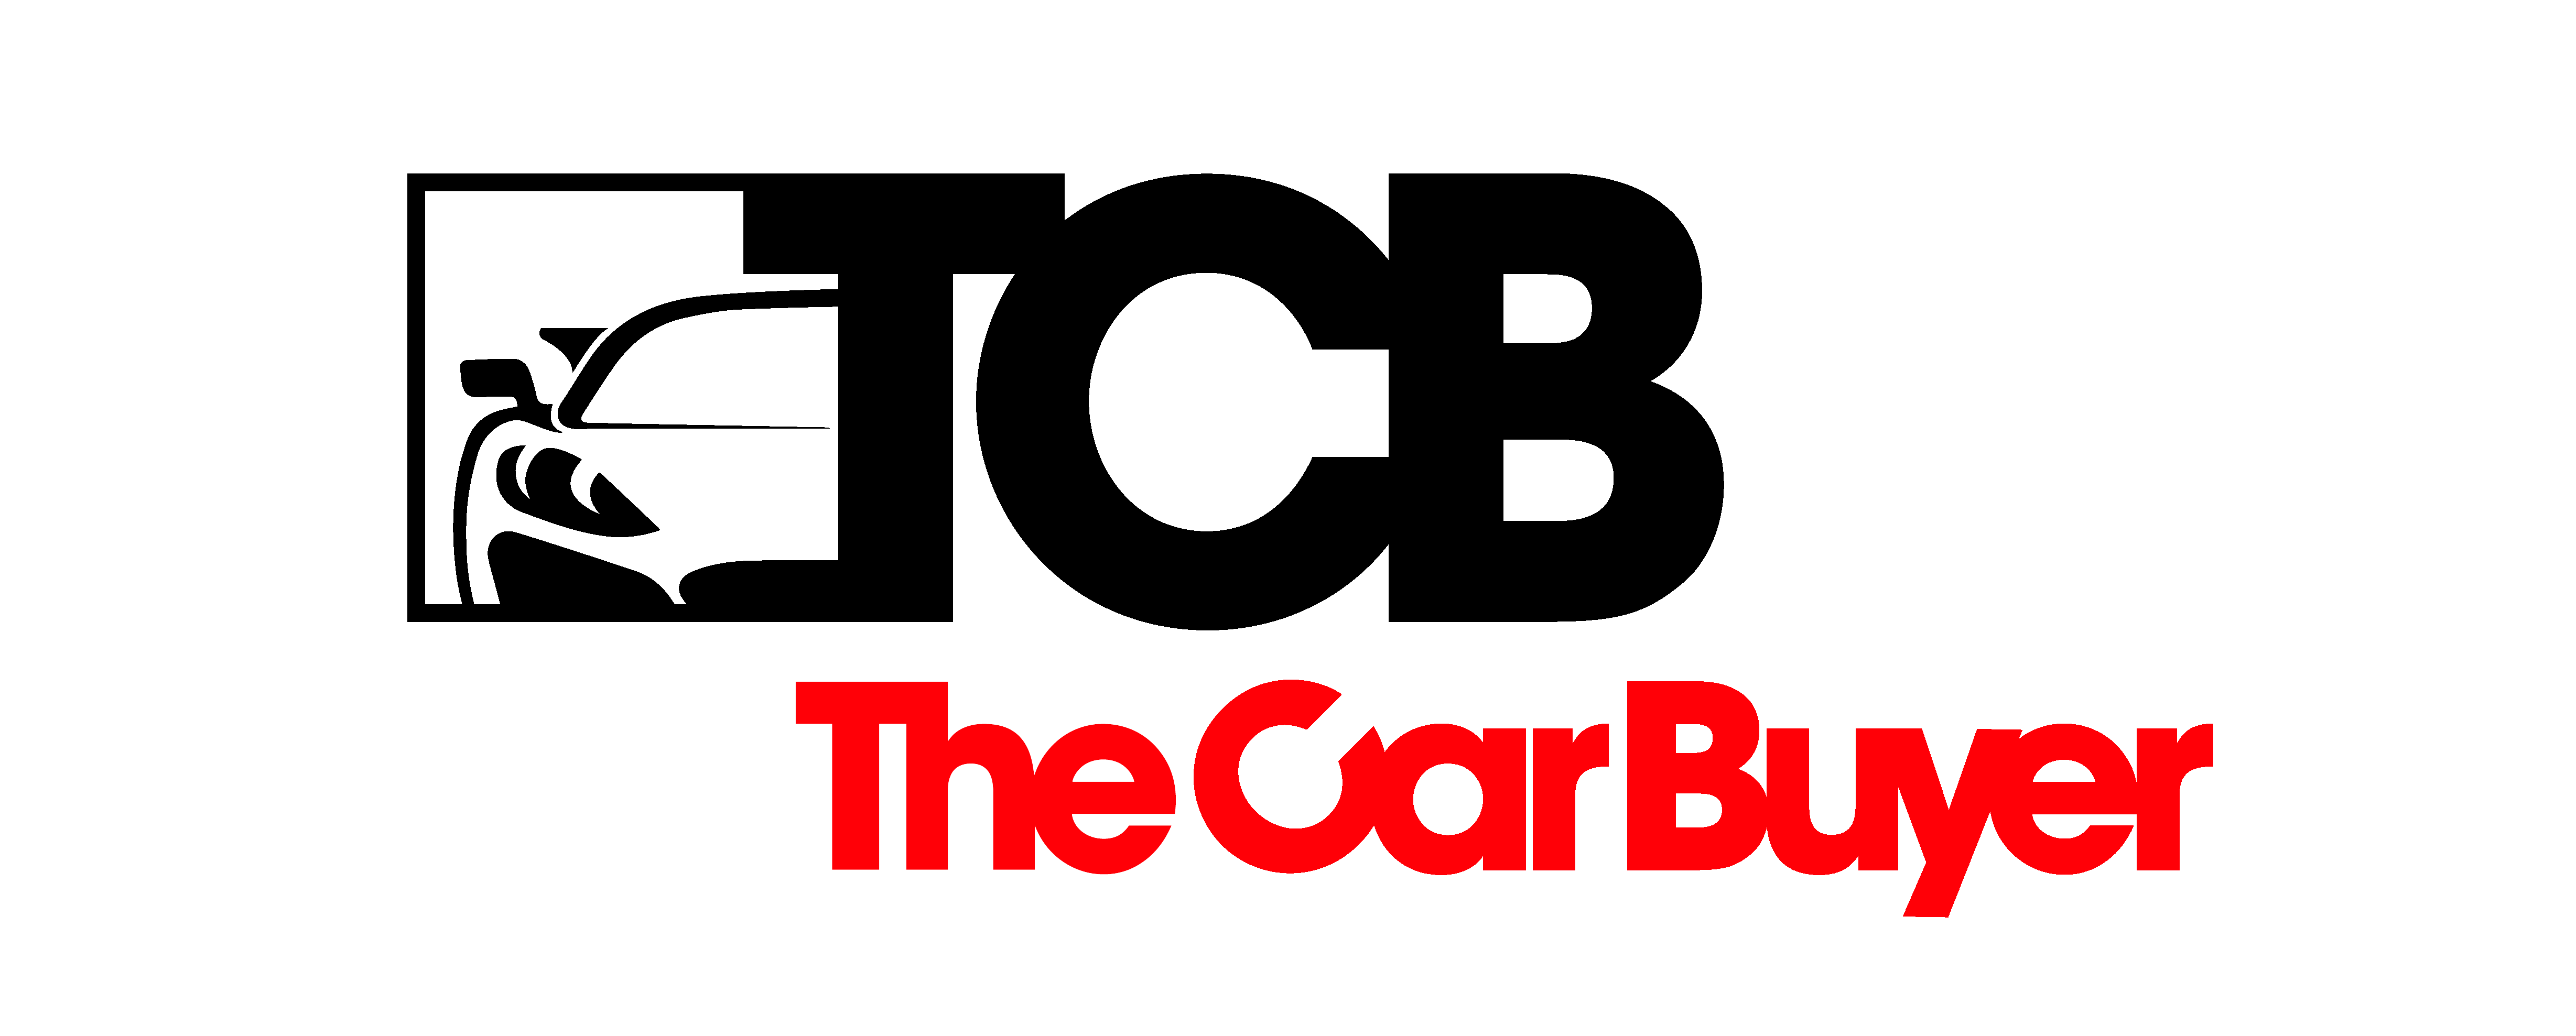 TCB The Car Buyer - Inglewood, CA 90304 - (310)692-8080   ShowMeLocal.com